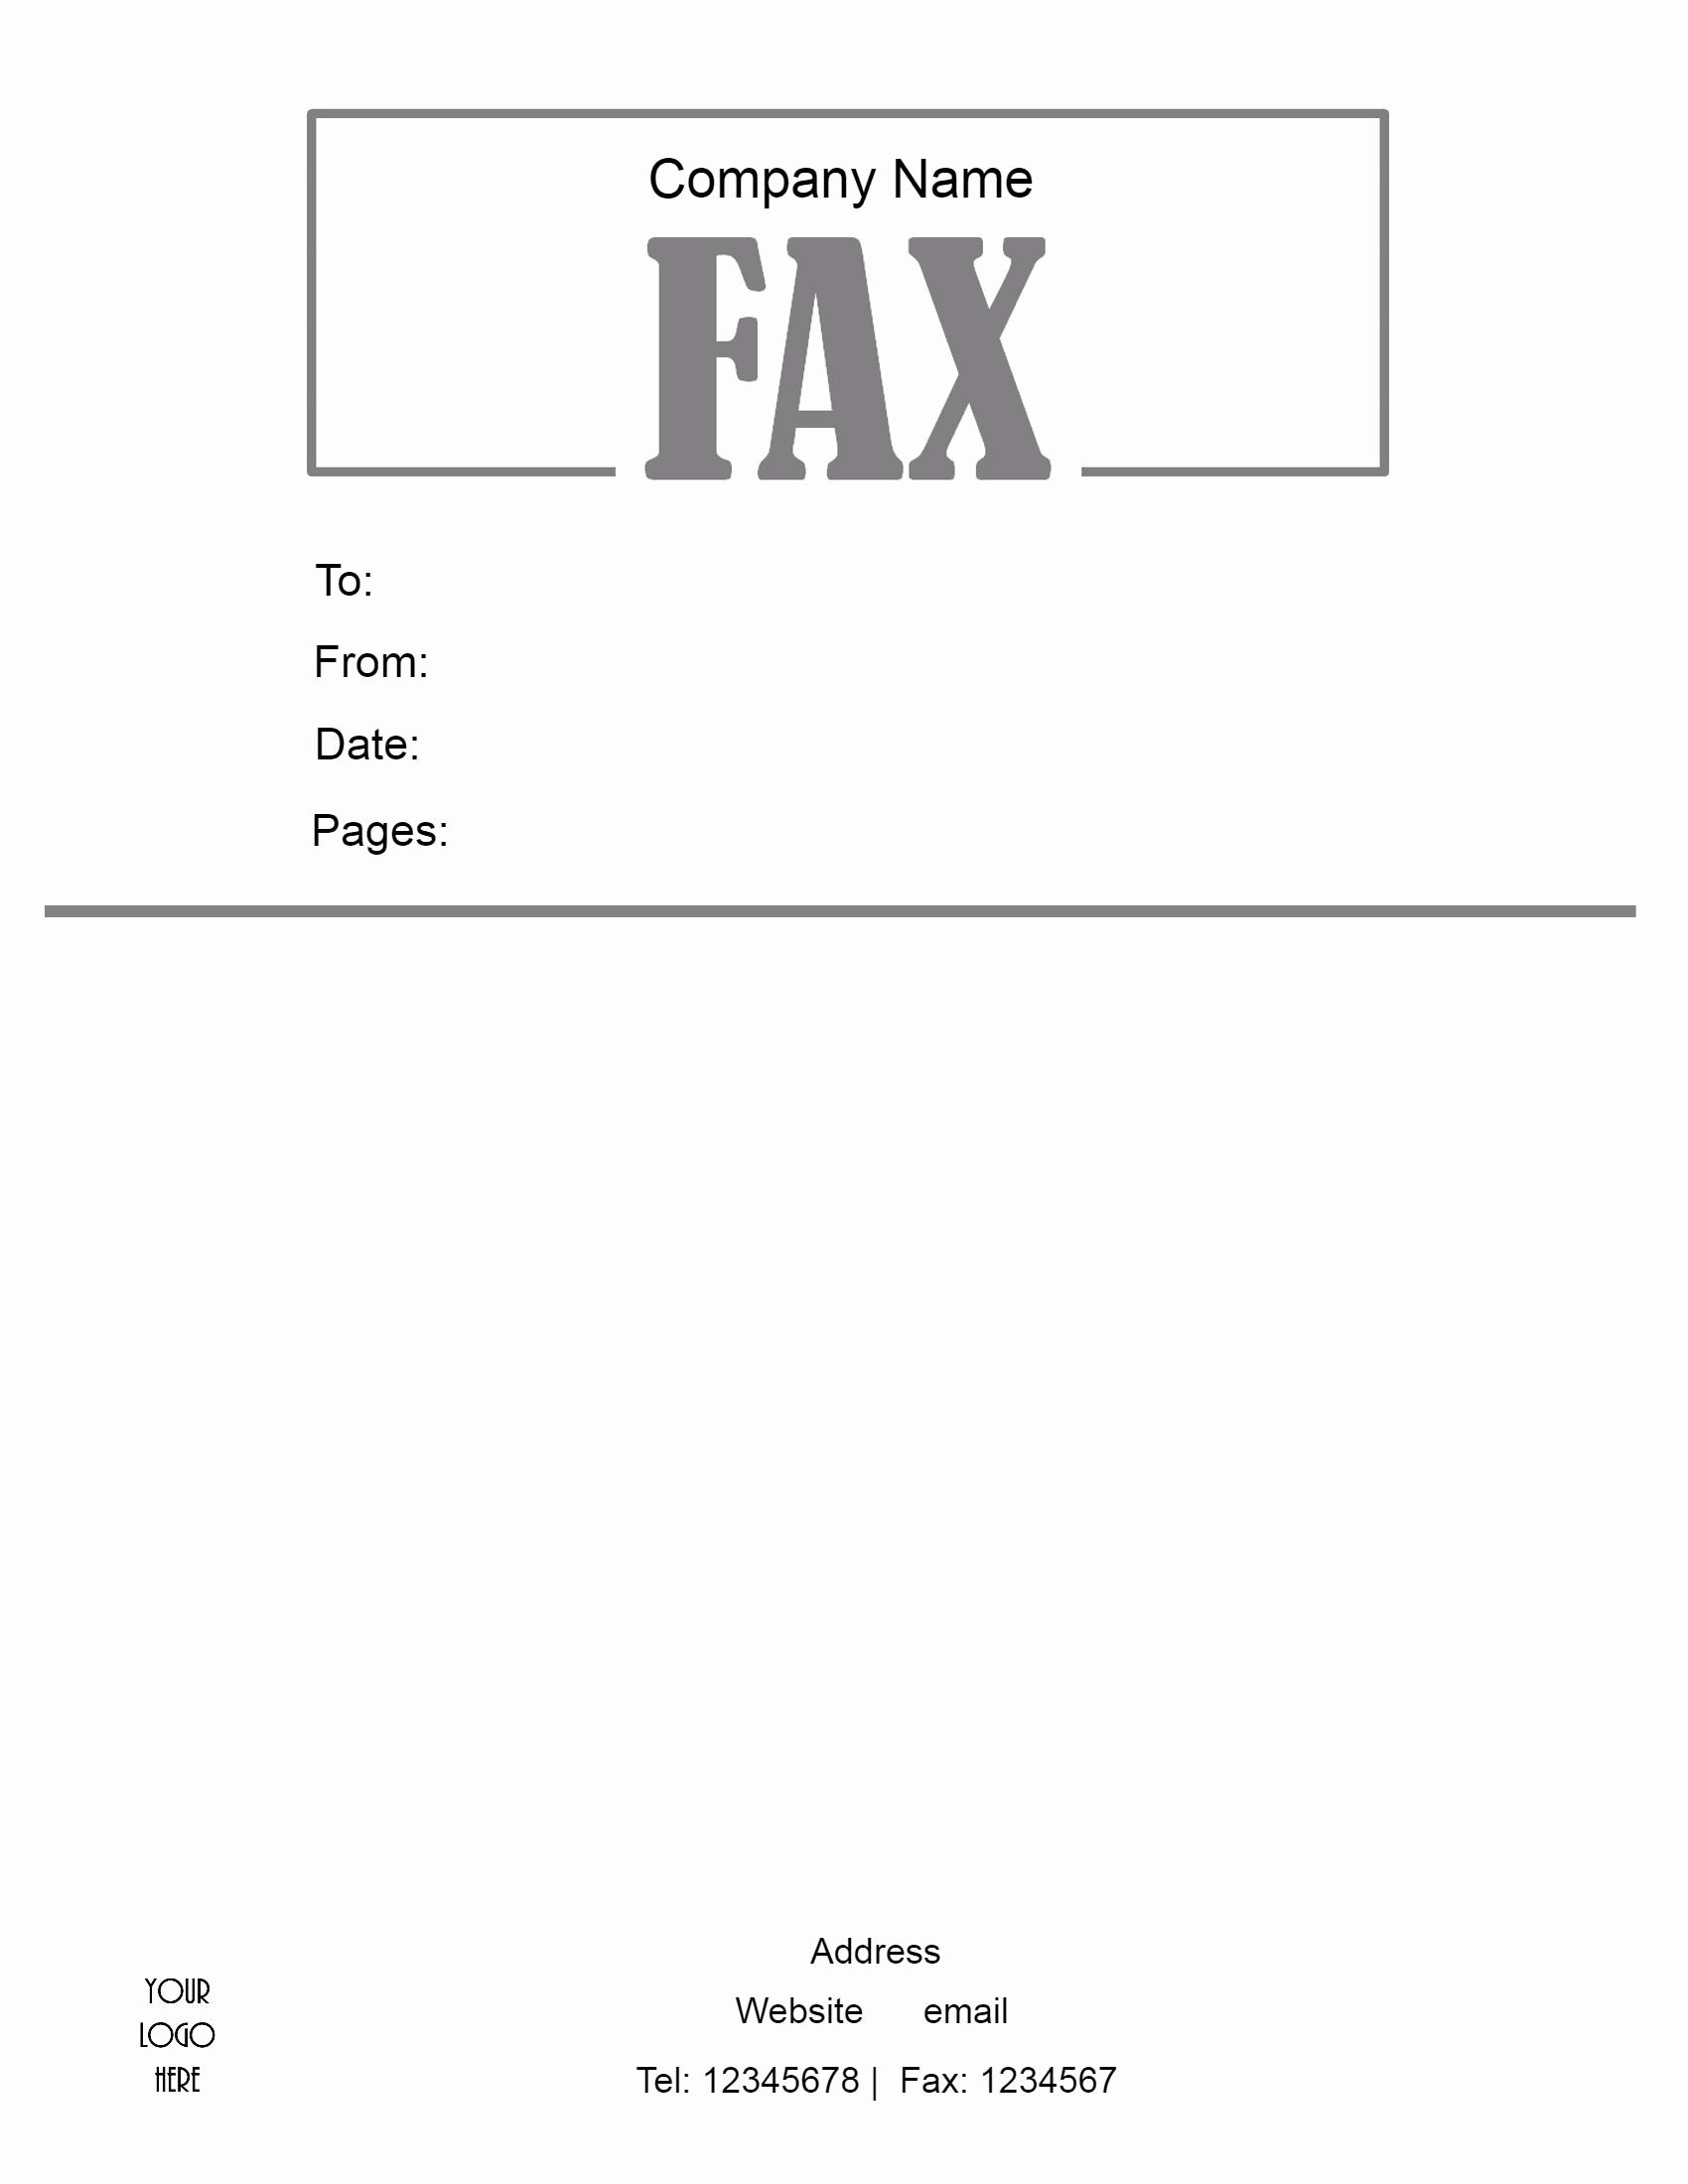 Fax Cover Sheet Template Free Elegant Free Fax Cover Sheet Template